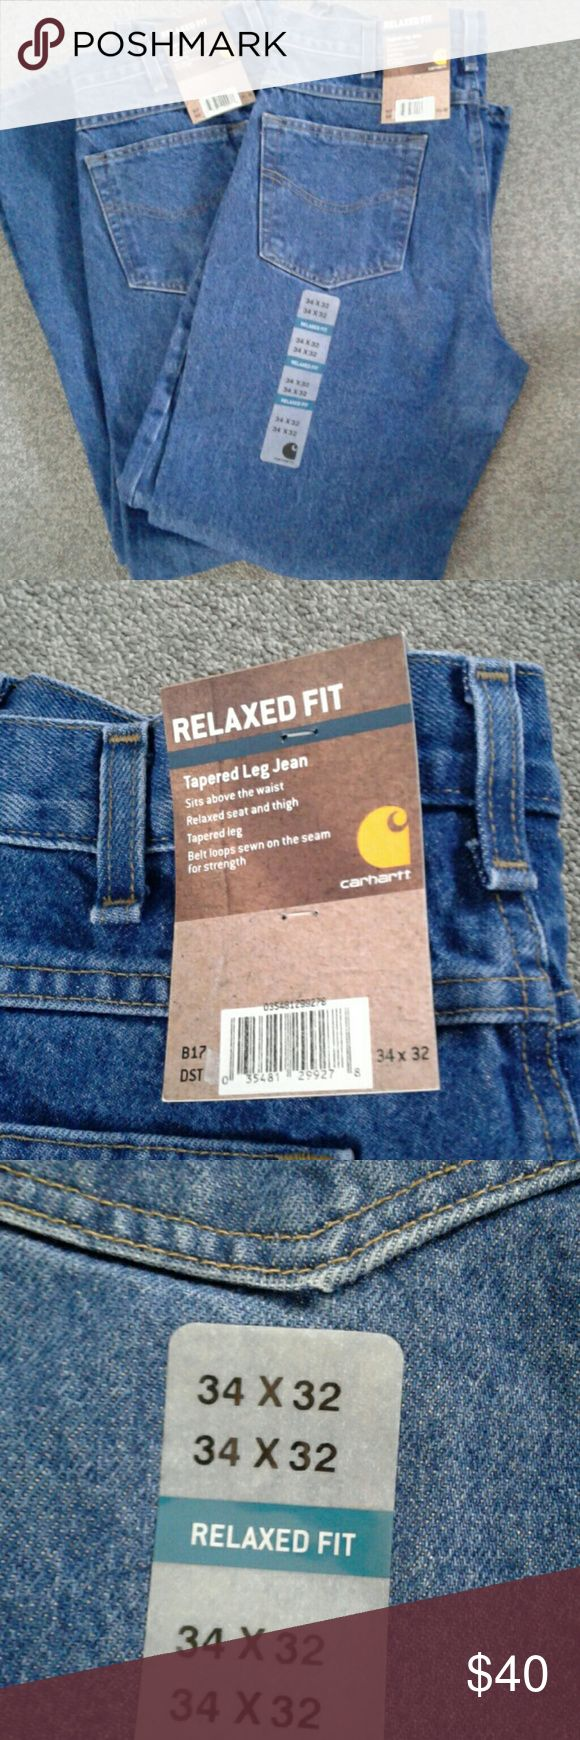 Jeans 2 pairs Carhart  34x32 Carhart Jeans Relaxed